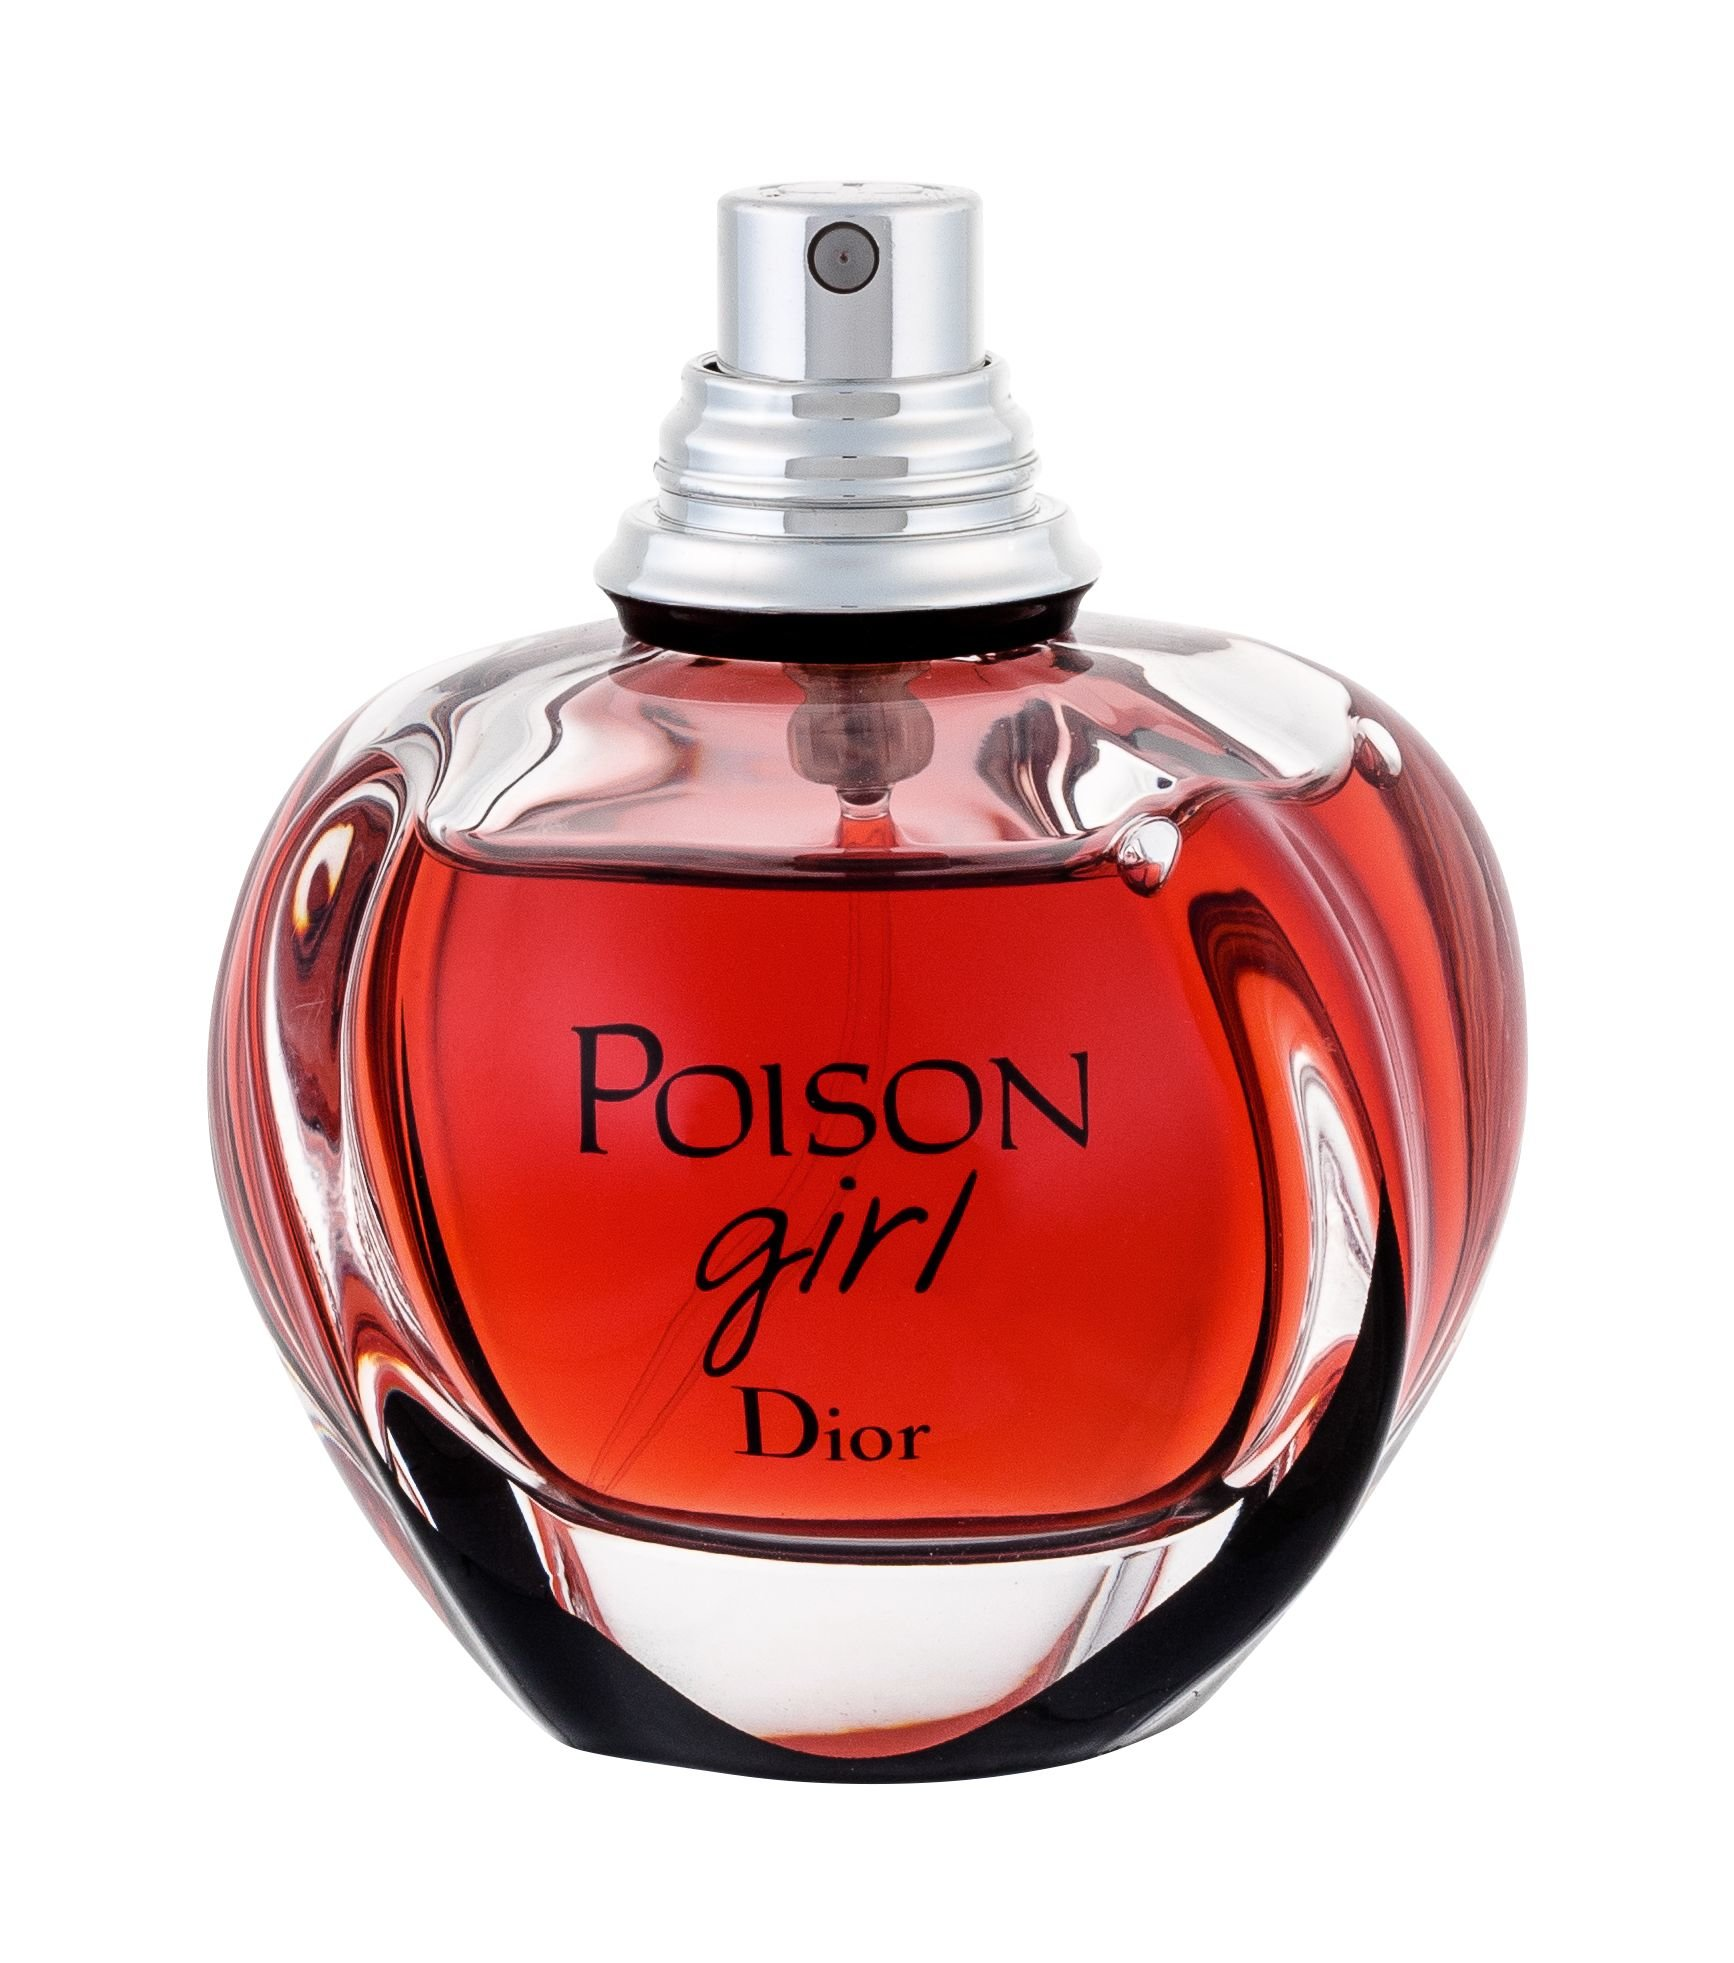 Christian Dior Poison Girl Eau de Parfum 50ml